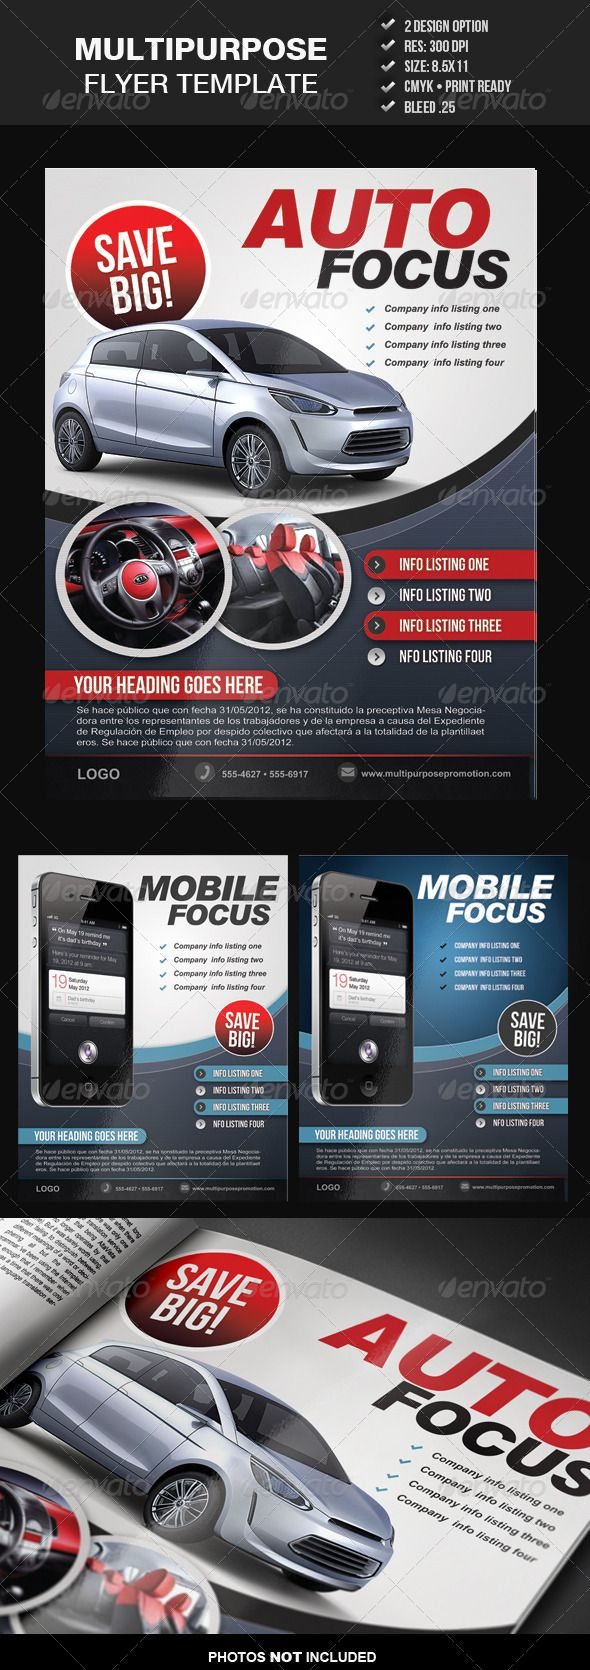 17 images about Car Flyer – Car Ad Template